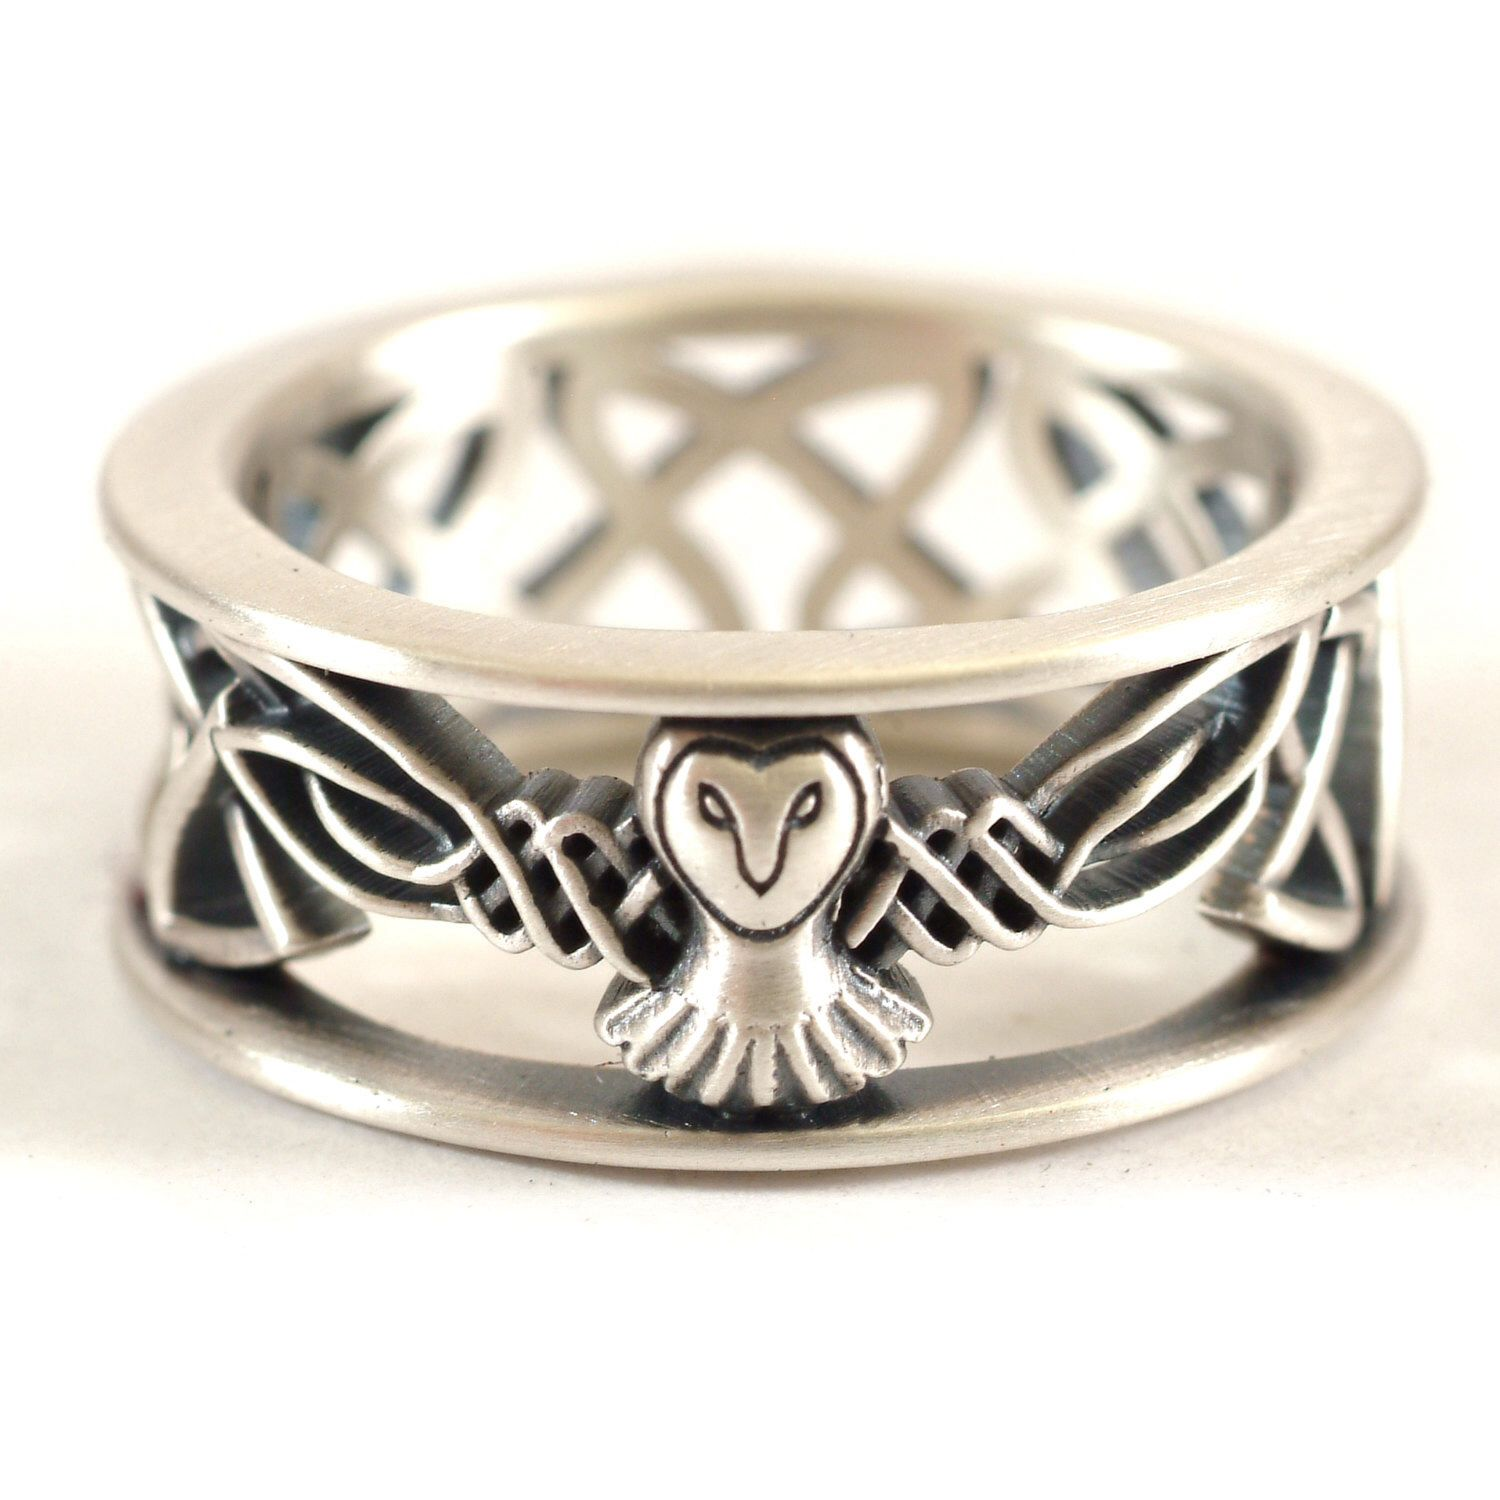 new of jens design ideas elvish inspirational fresh hansen wedding rings concept elven engraving ring alsayegh